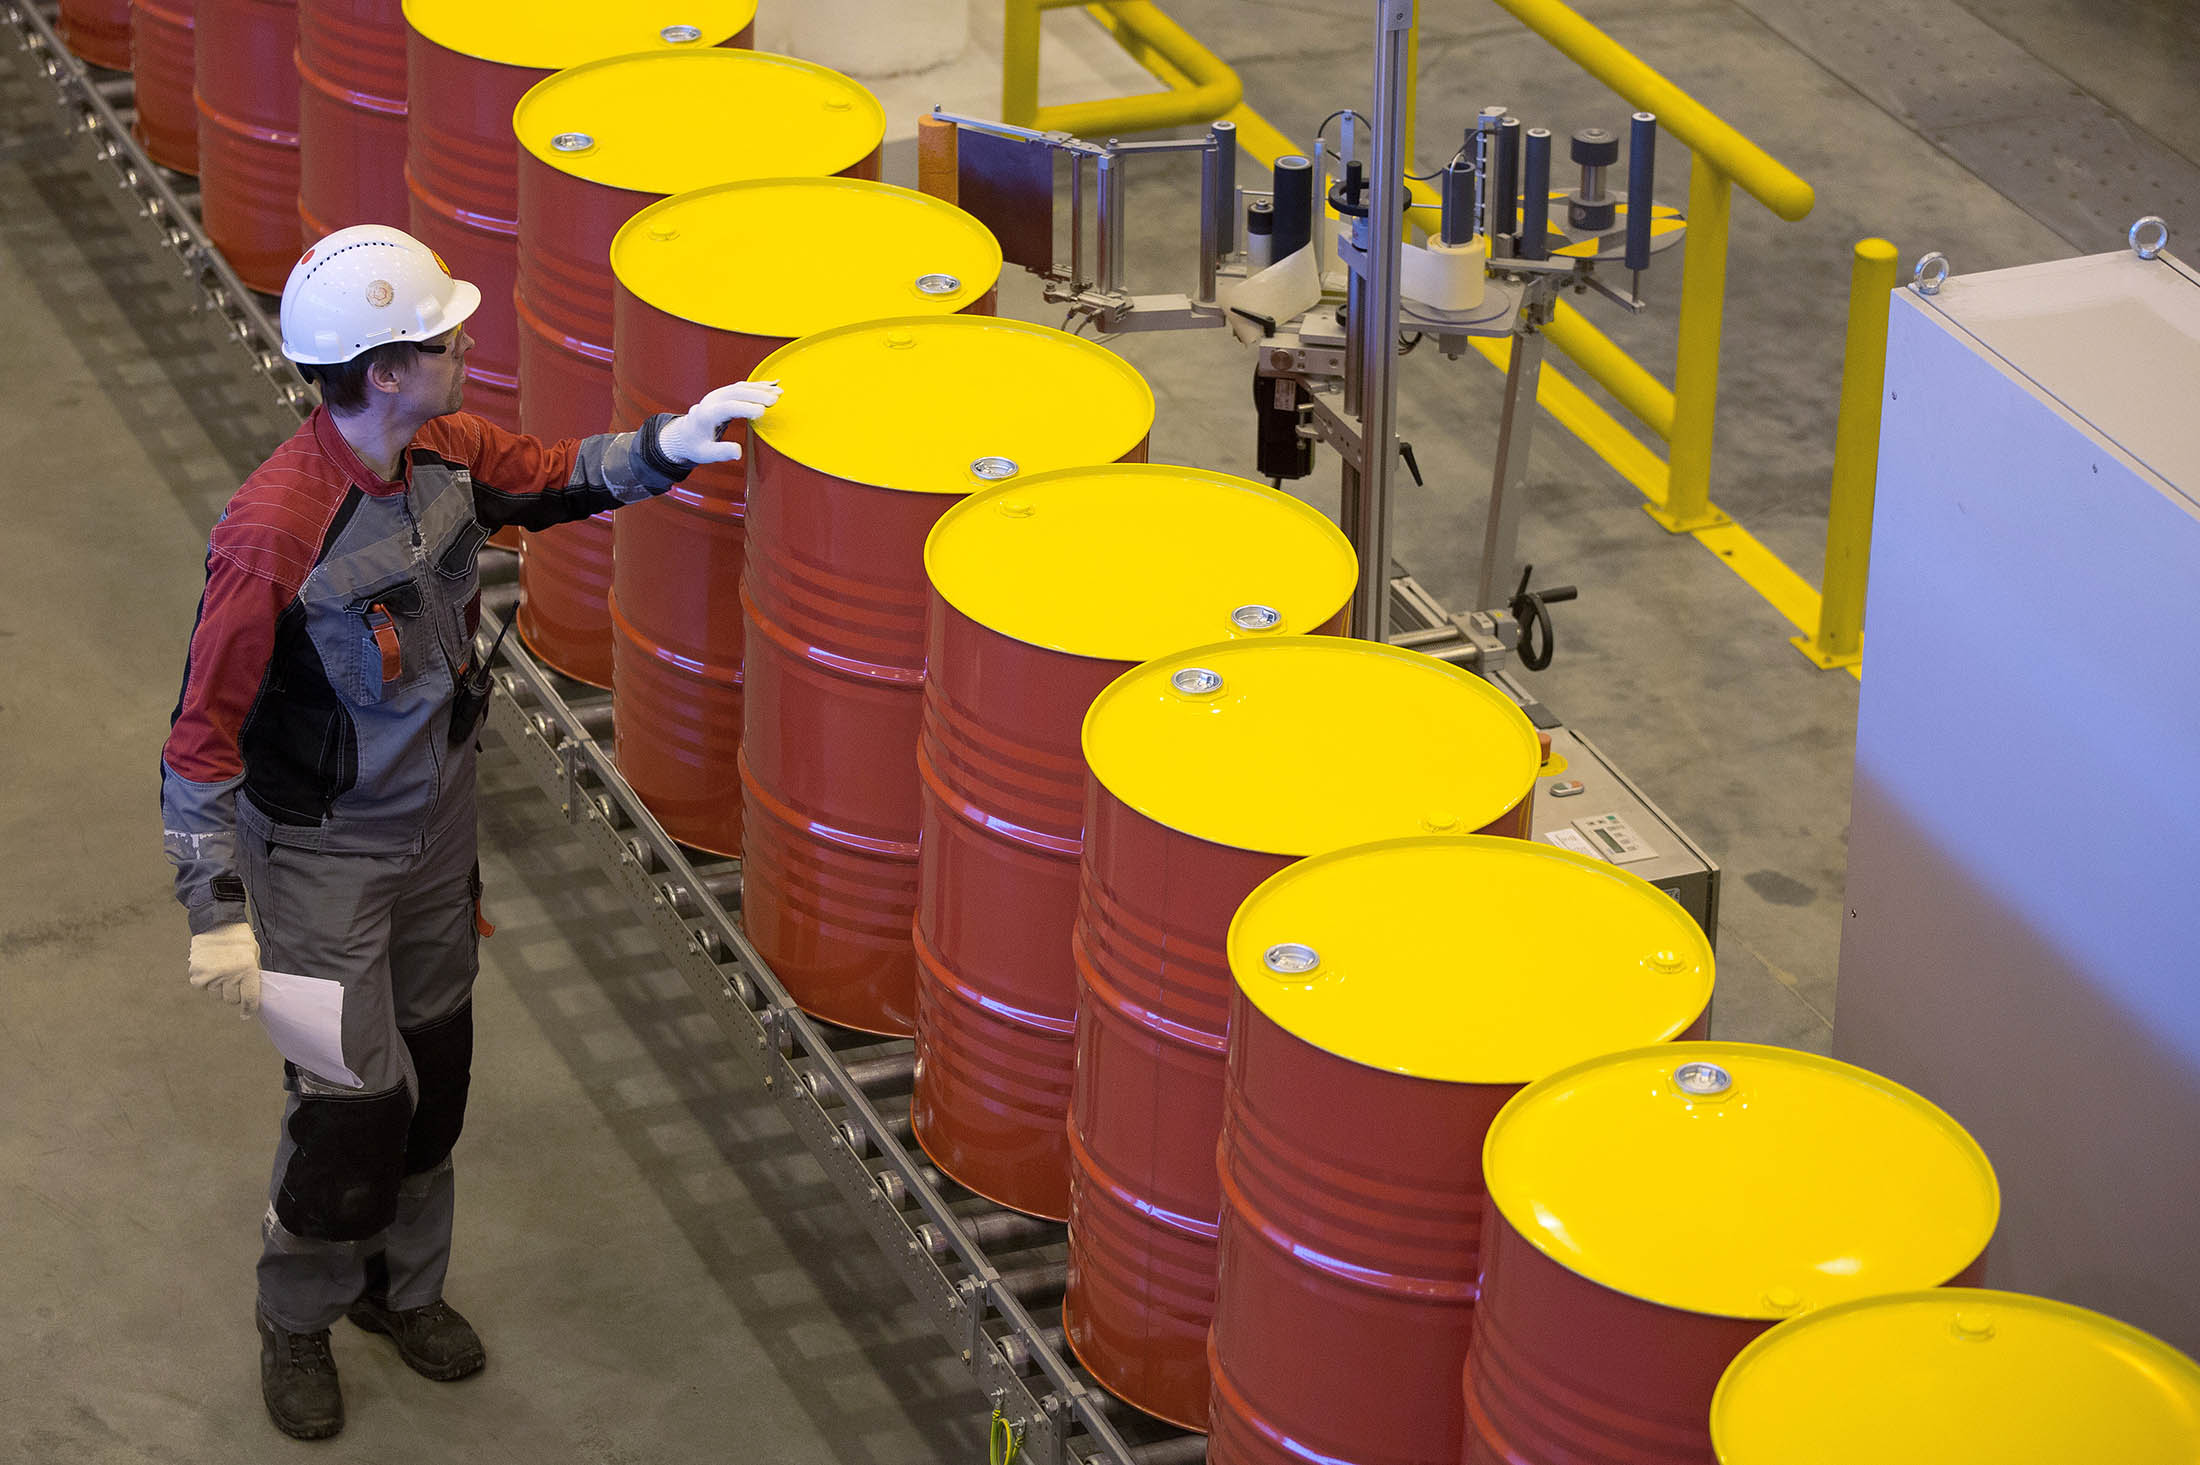 Can you buy oil in a barrel?